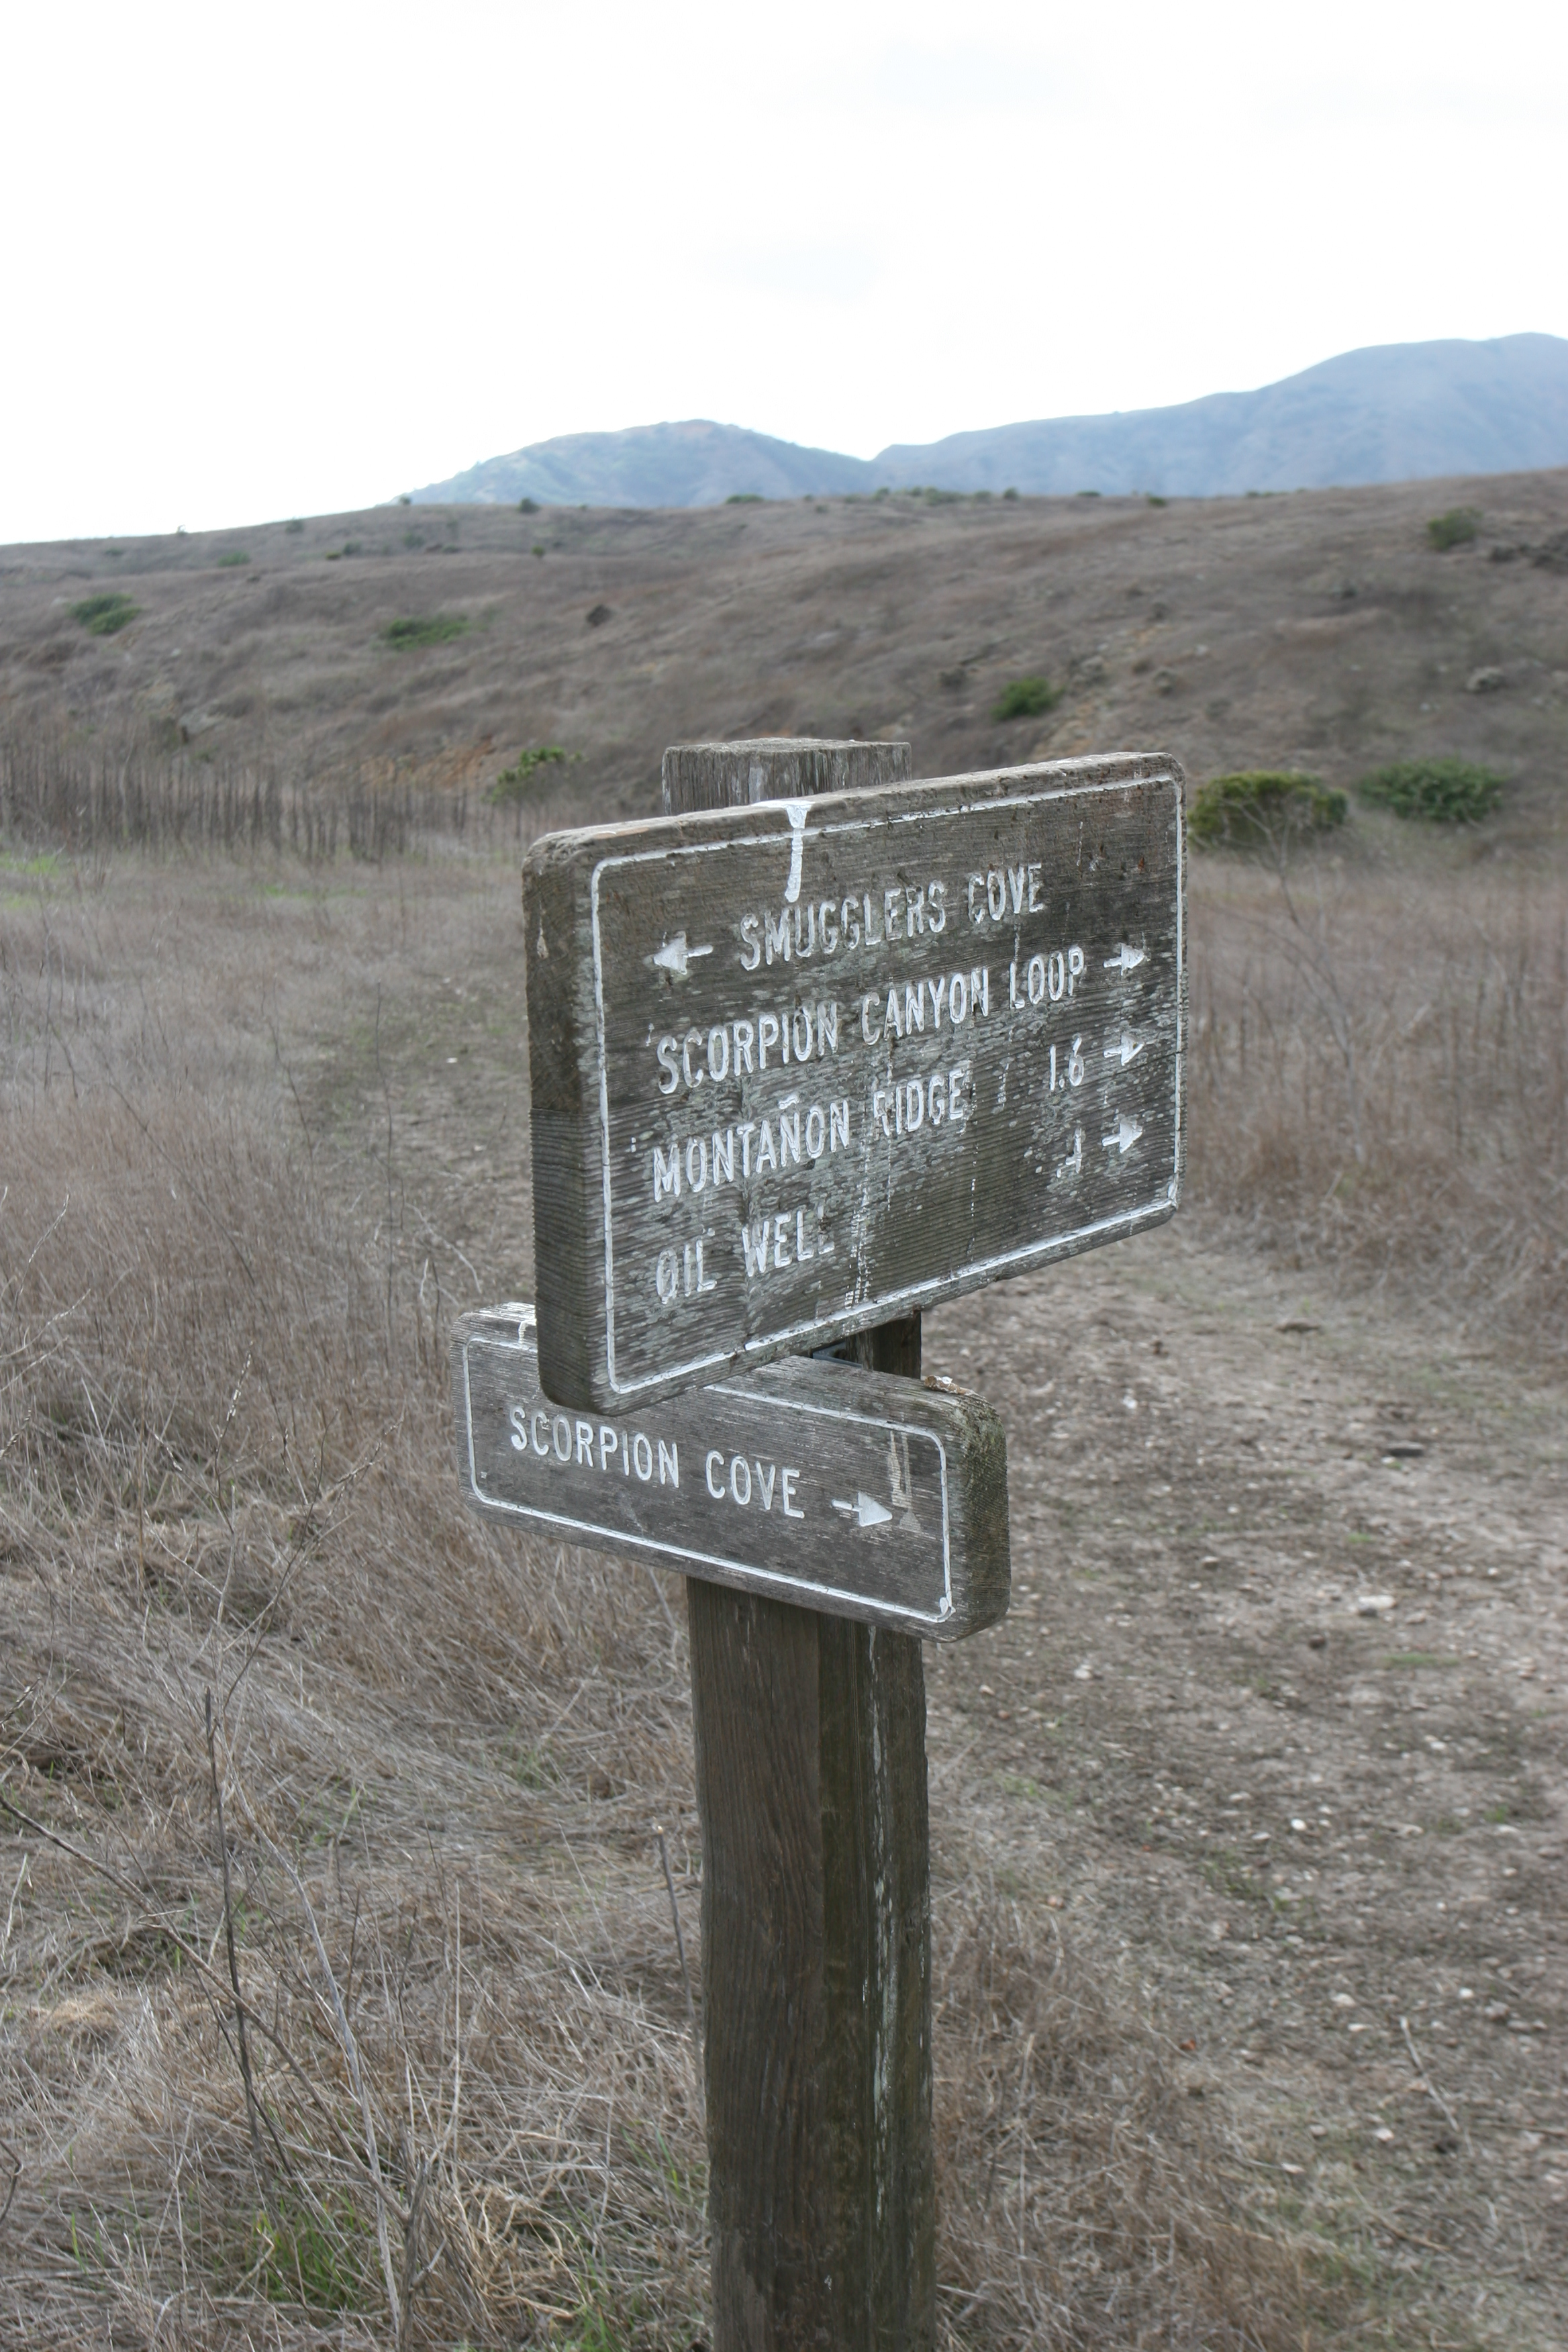 The sign at the two mile marker for the turnoff to the oil well